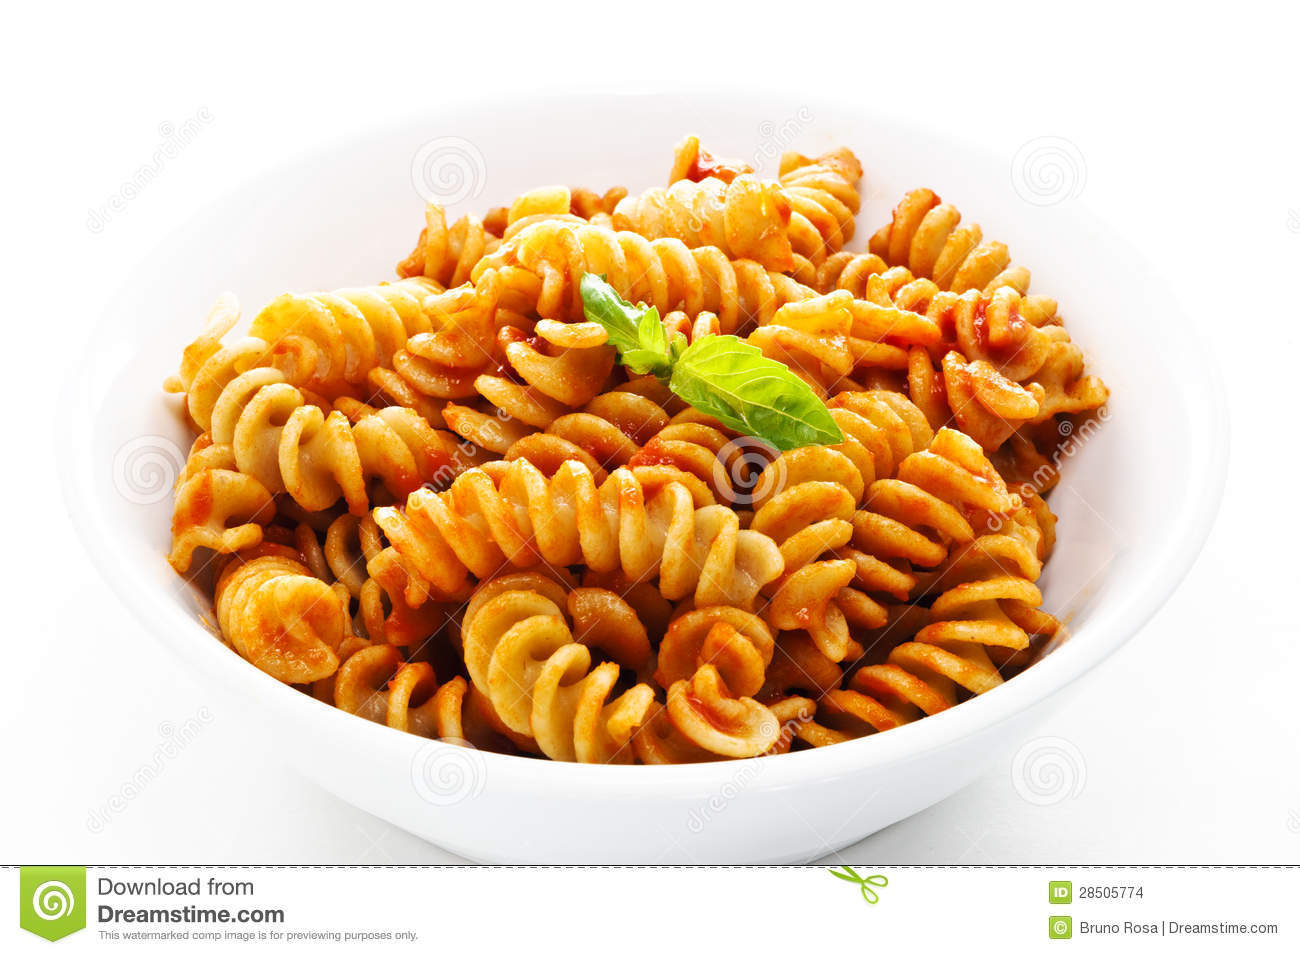 Pasta With Tomato Sauce And Basil Stock Images - Image: 28505774